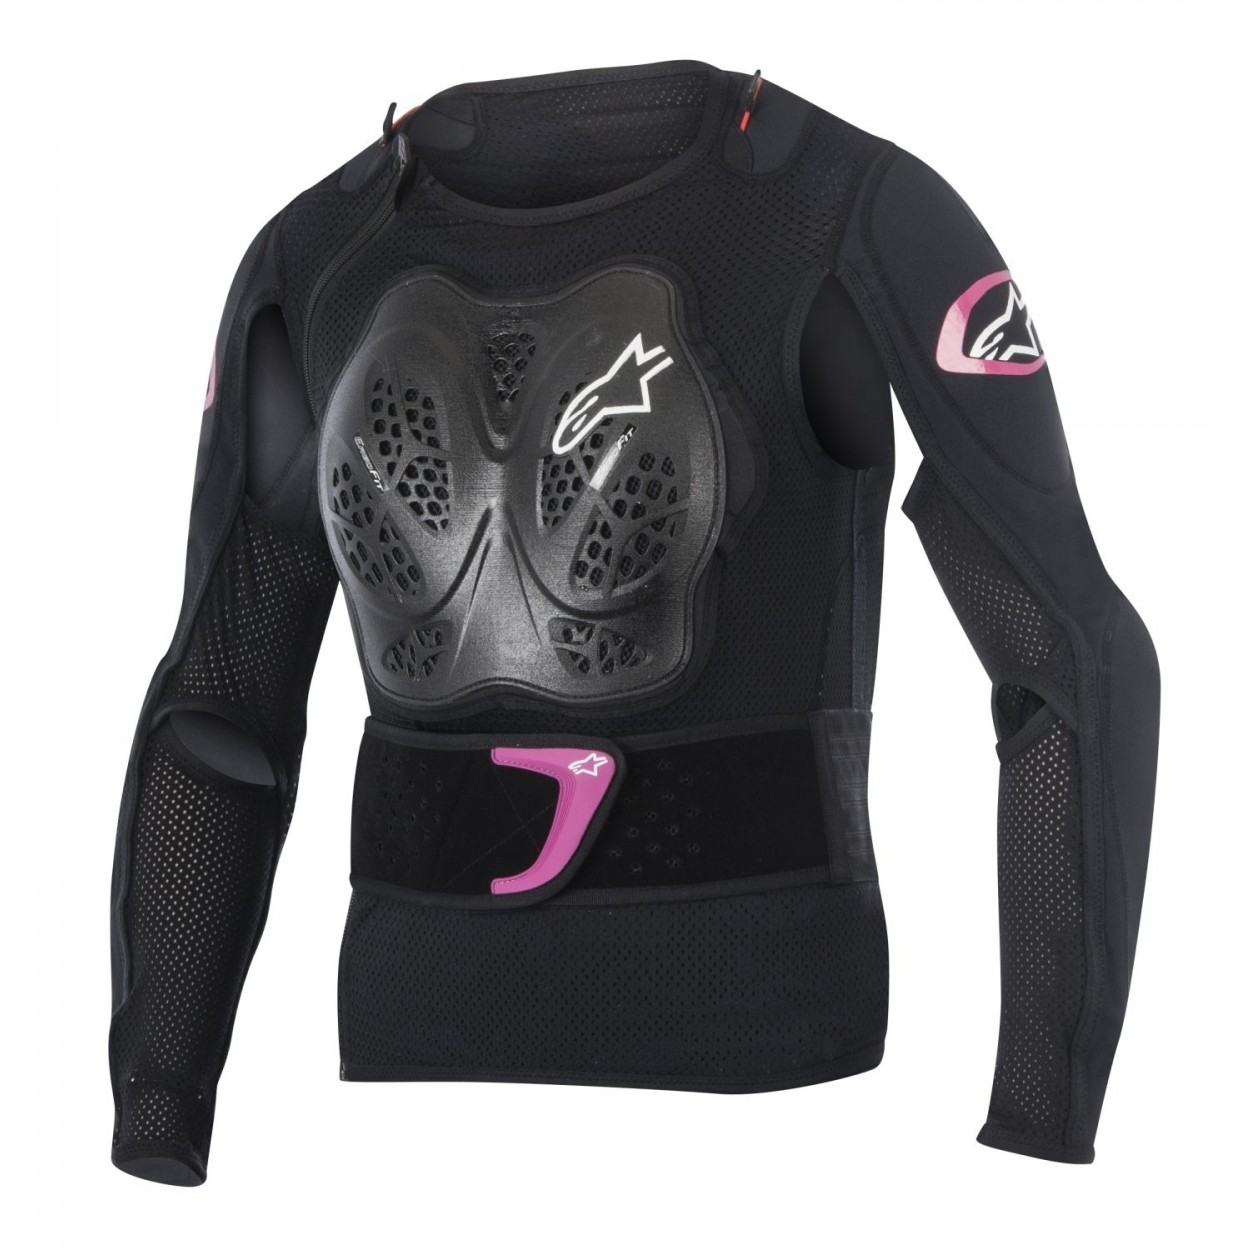 alpinestars stella bionic damen protektorenjacke enduro store. Black Bedroom Furniture Sets. Home Design Ideas